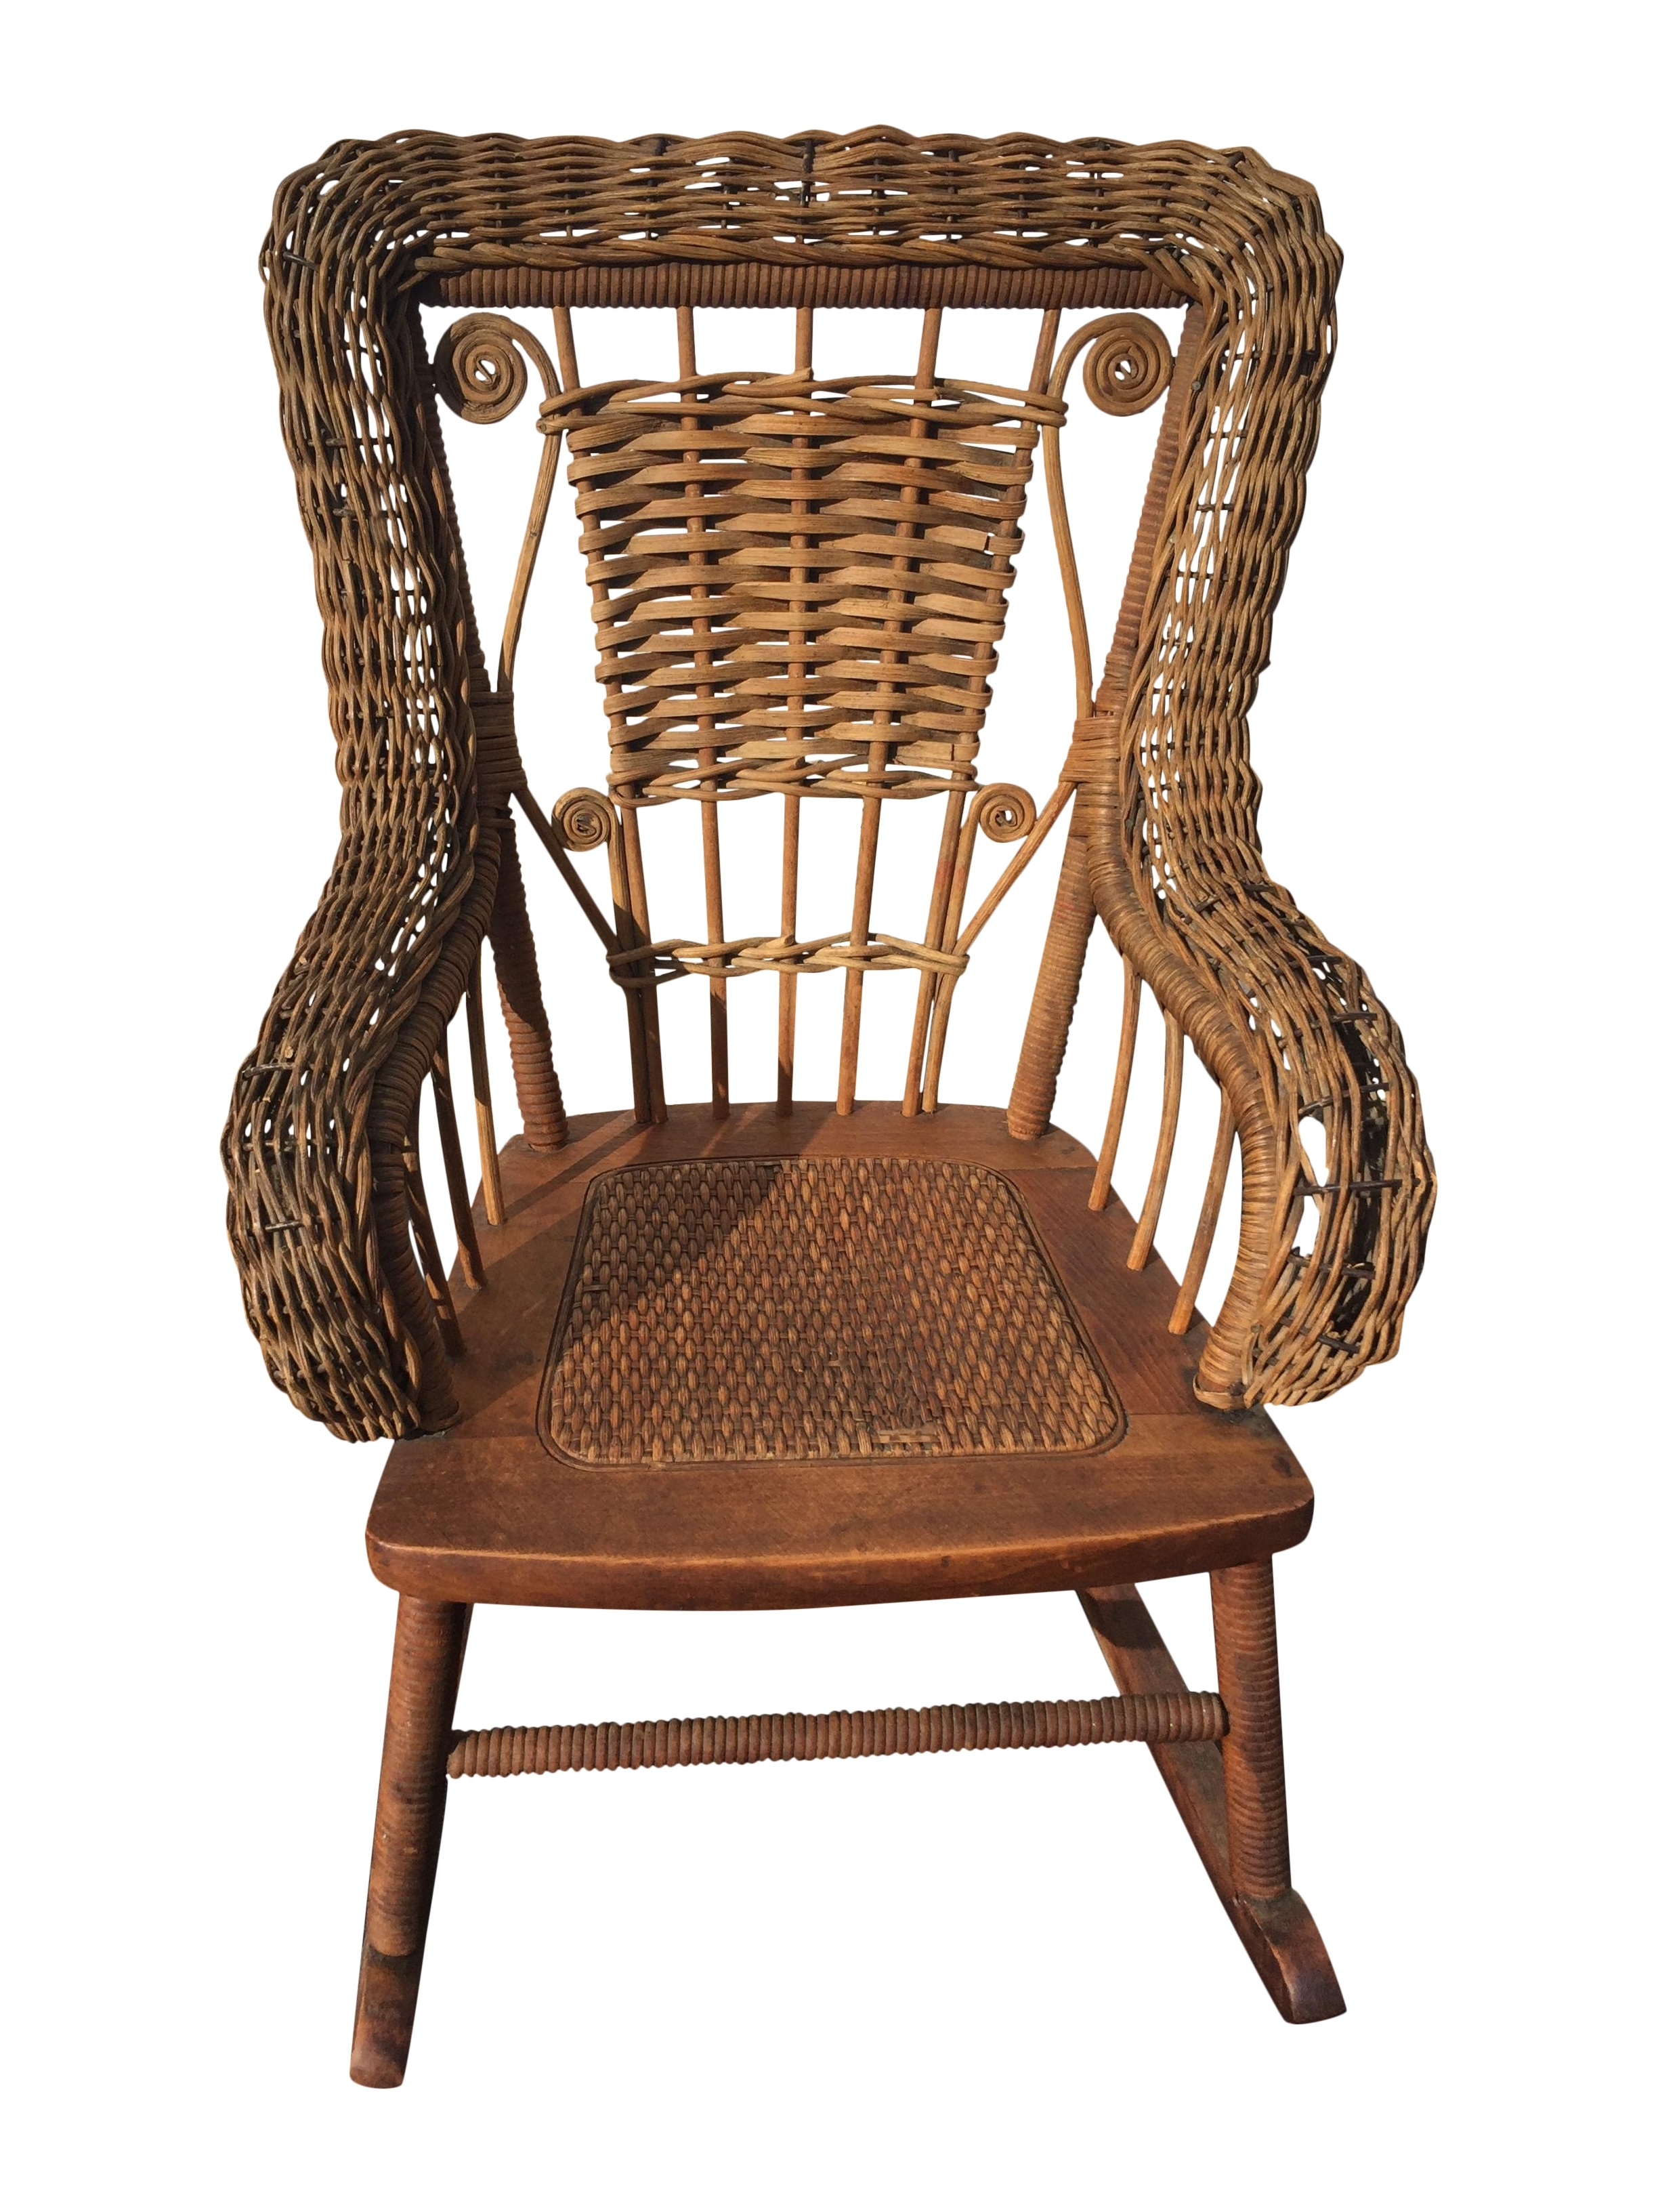 Antique Childrens Wicker Spindle Rocking Chair Chairish Childs Uk In Most Recent Vintage Wicker Rocking Chairs (View 17 of 20)